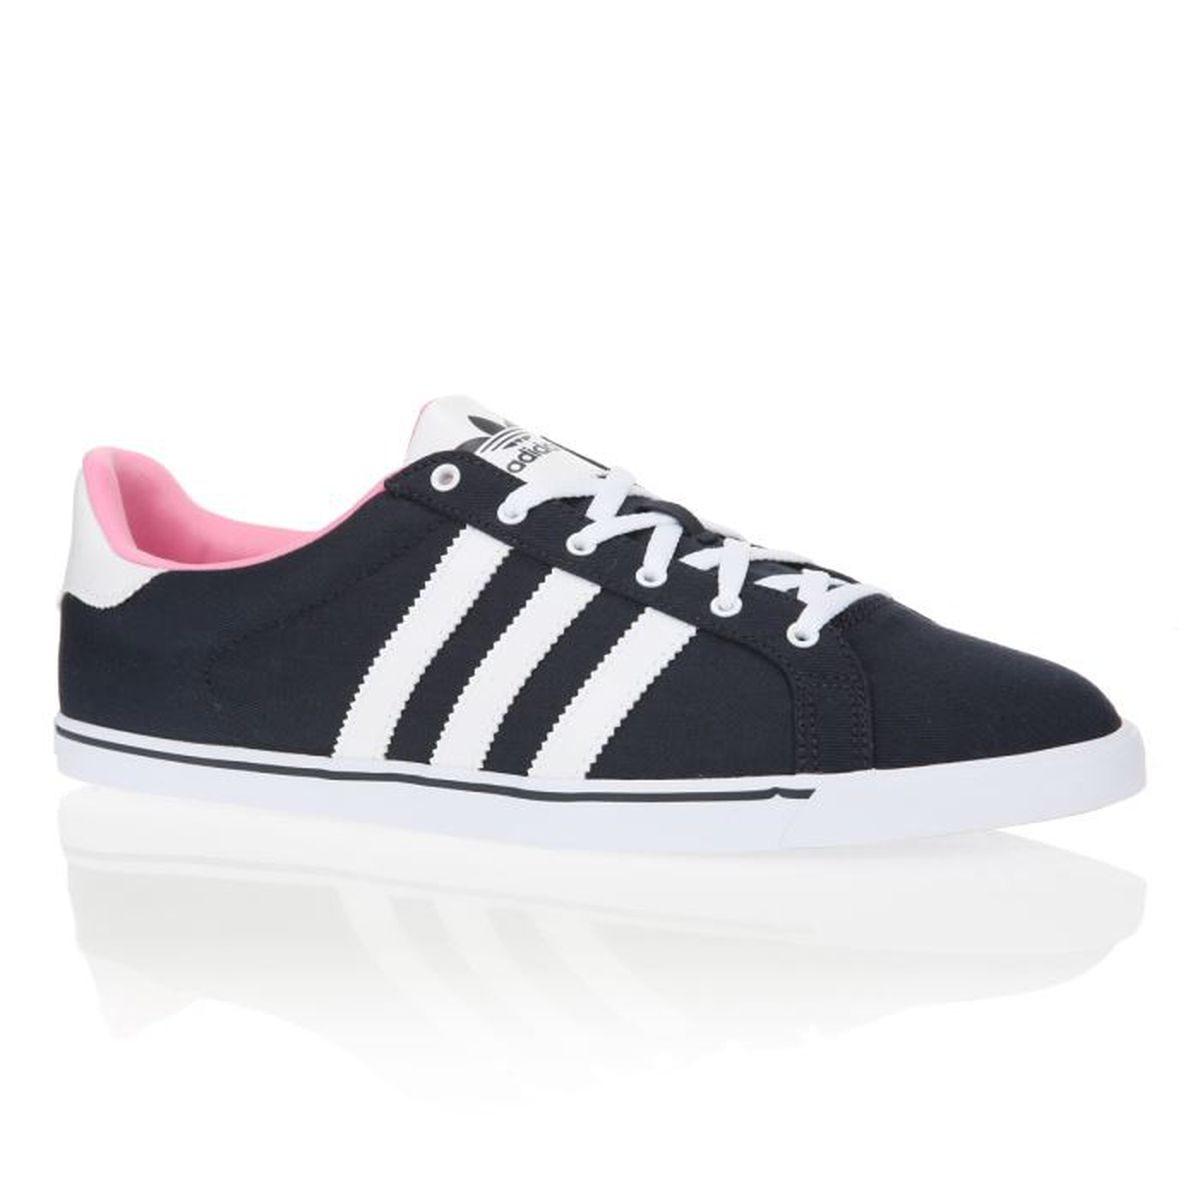 ADIDAS ORIGINALS Baskets Court Star Slim W Femme